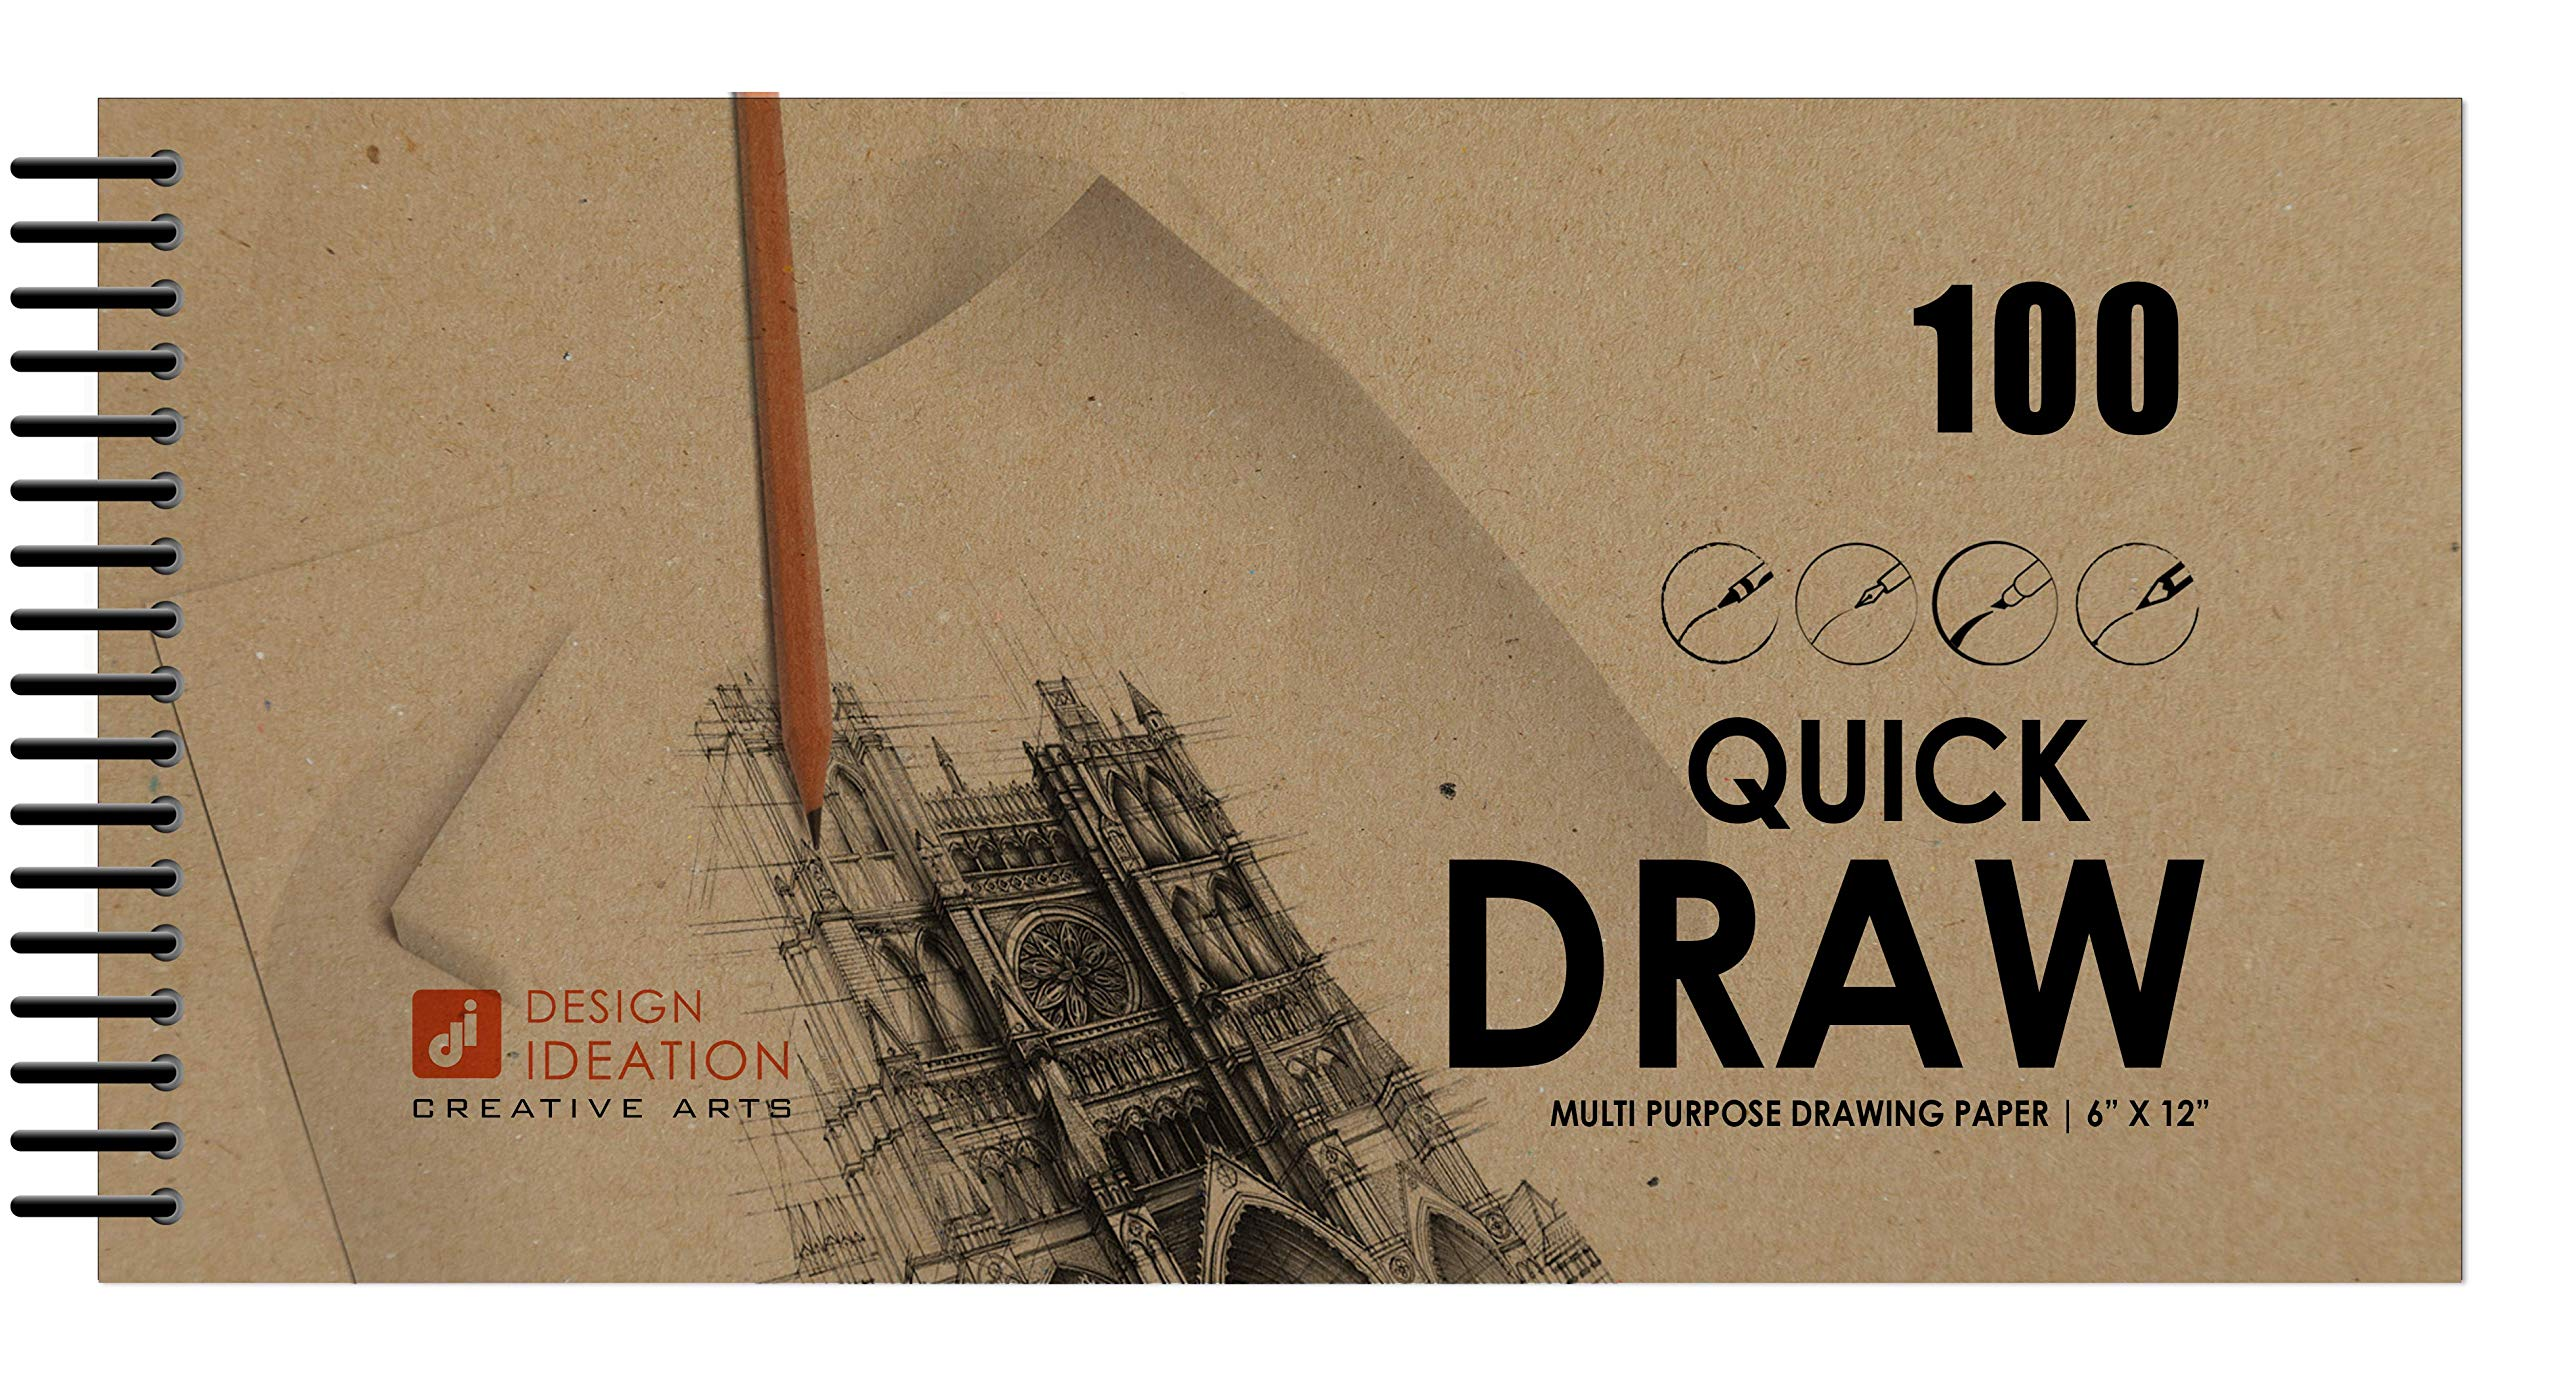 Design Ideation Quick Draw Book : Multi-Media Paper Drawing Book for Pencil, Ink, Marker and Charcoal. Great for Art, Design and Education. Ideal for Quick Drawing. Made in The USA. (6'' x 12'') (10) by Design Ideation